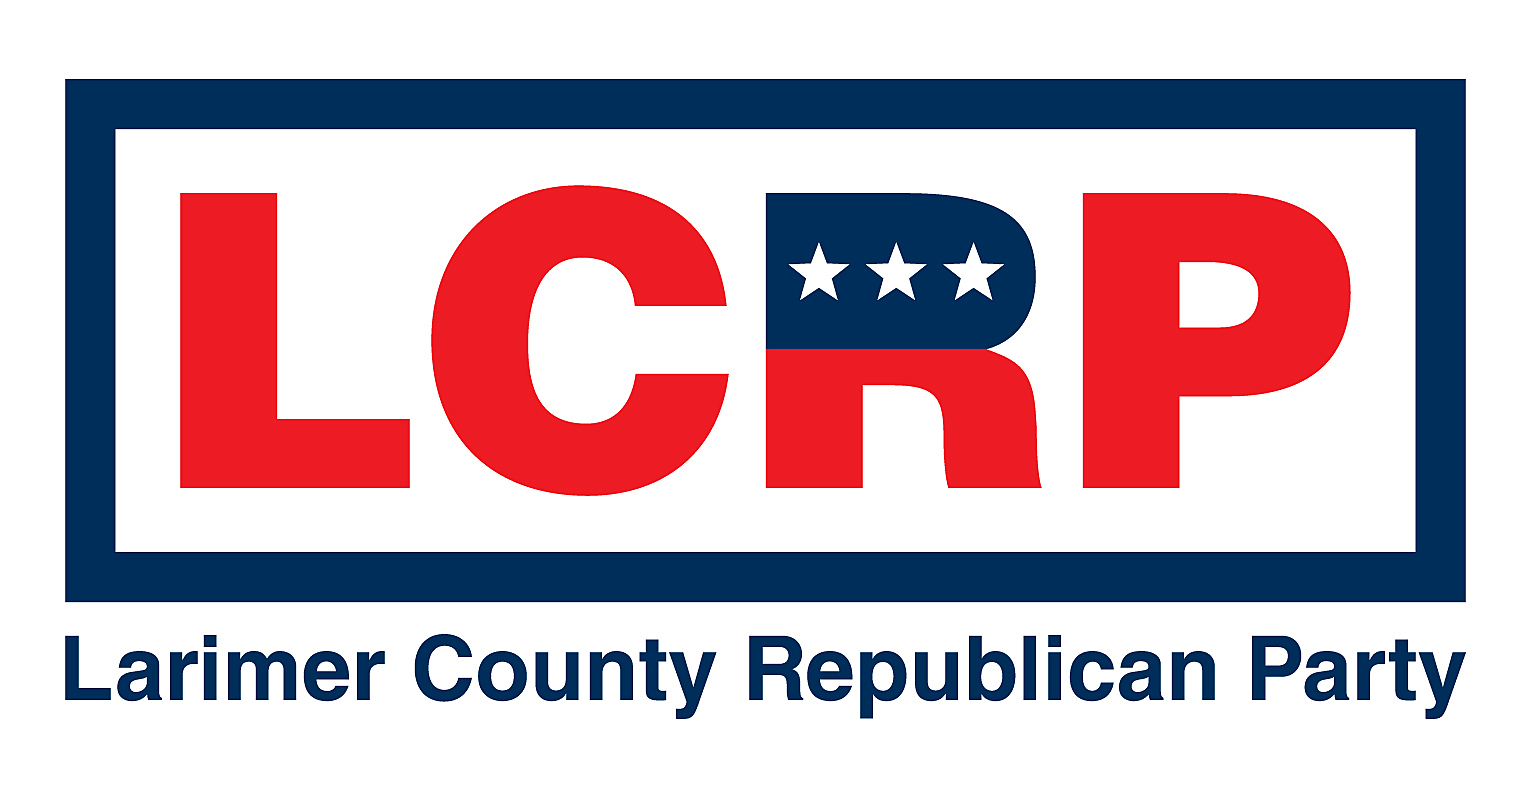 Larimer County Republican Party: General Donations